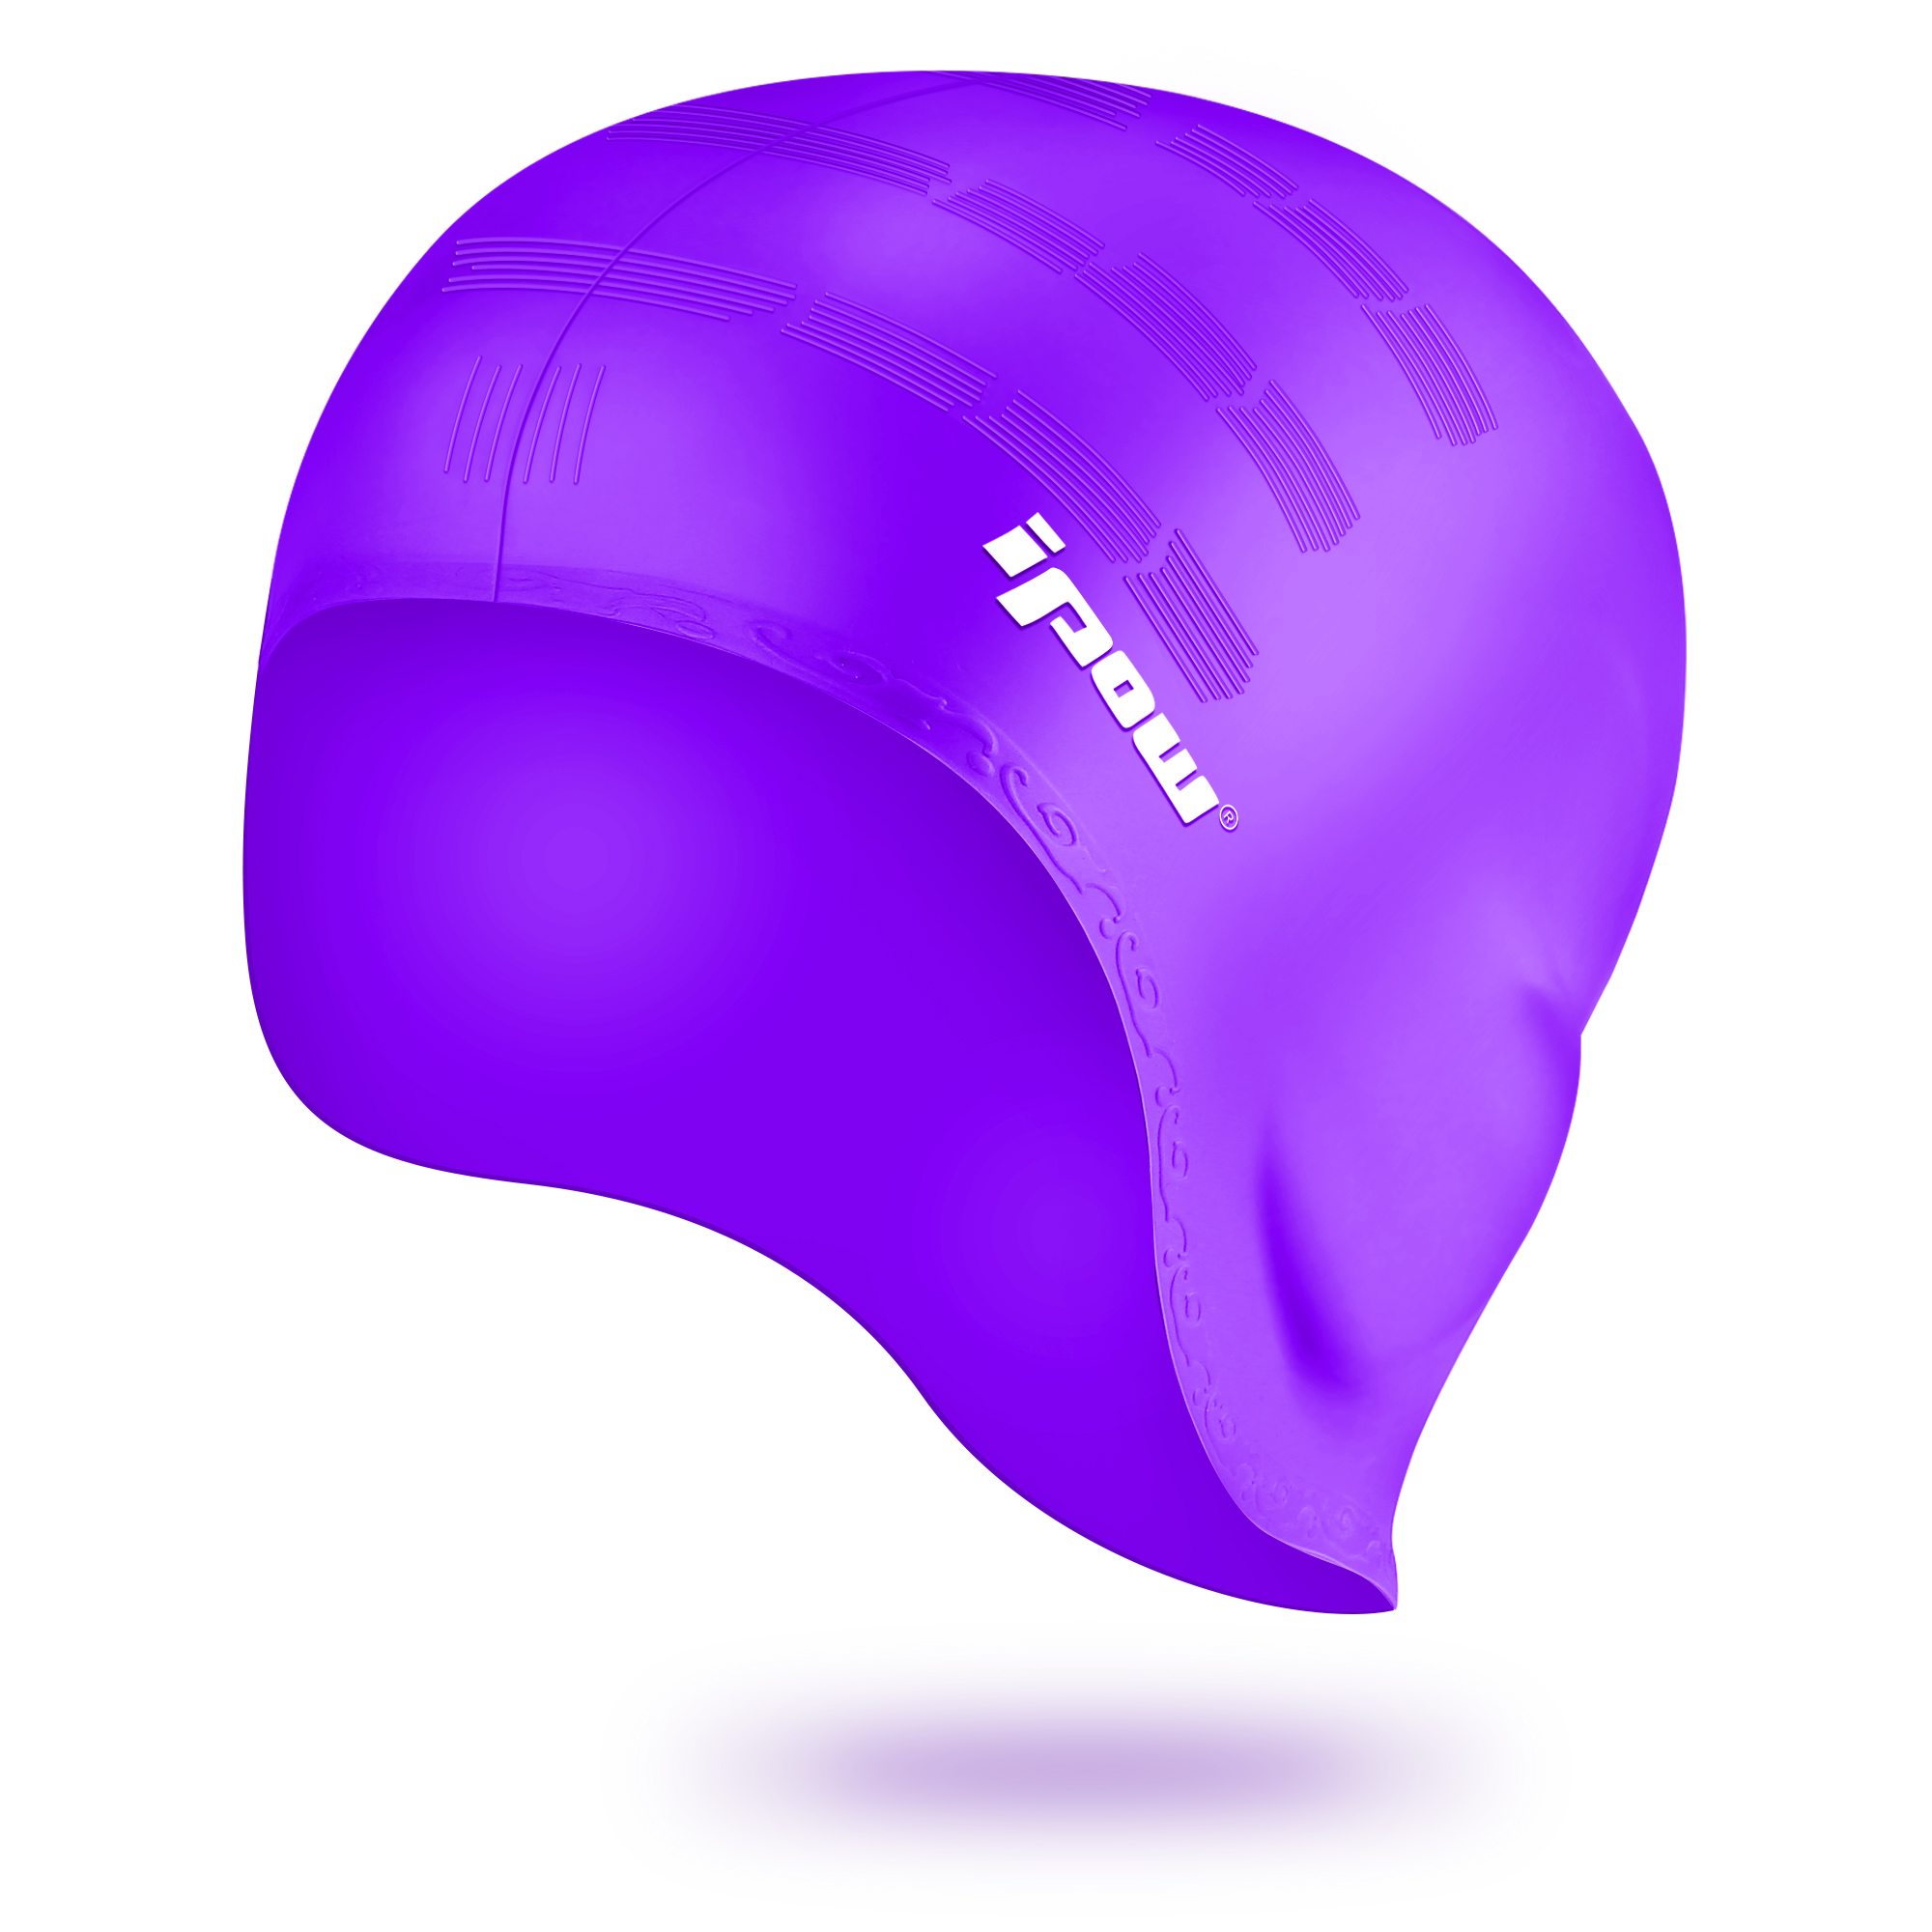 IPOW Adult Swim Cap for Long Hair Ladies, Superior Over-the-Ear Waterproof Silicone Swimming Cap, Durable and Resilient for Men, Women, Kids, Youth Girls and Boys-Purple